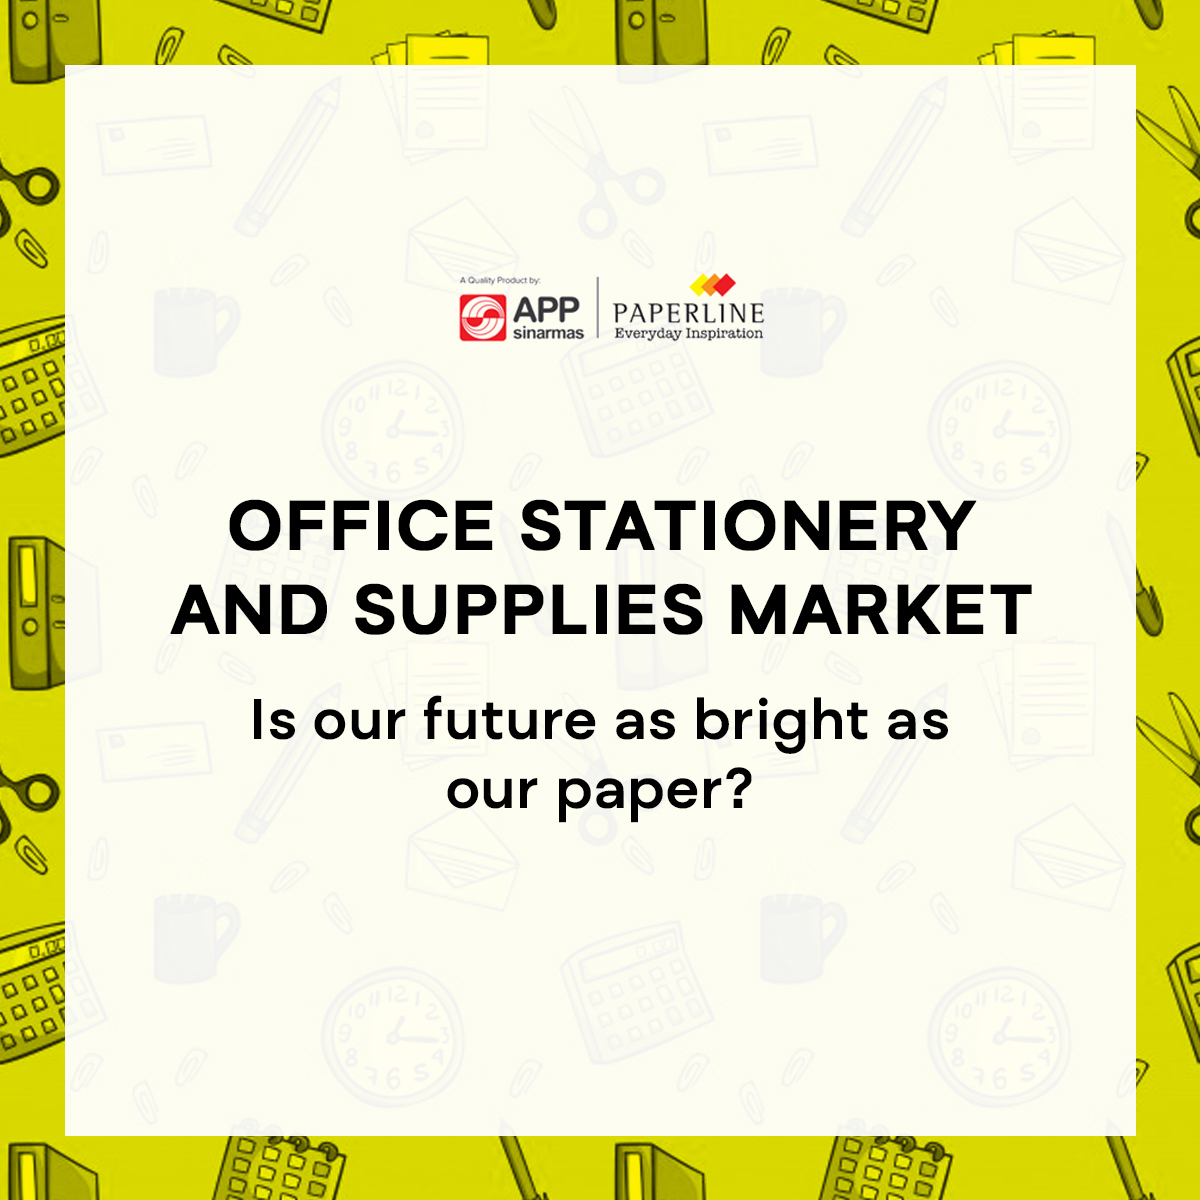 Office Stationery and Supplies Market – Is Our Future as Bright as Our Paper?